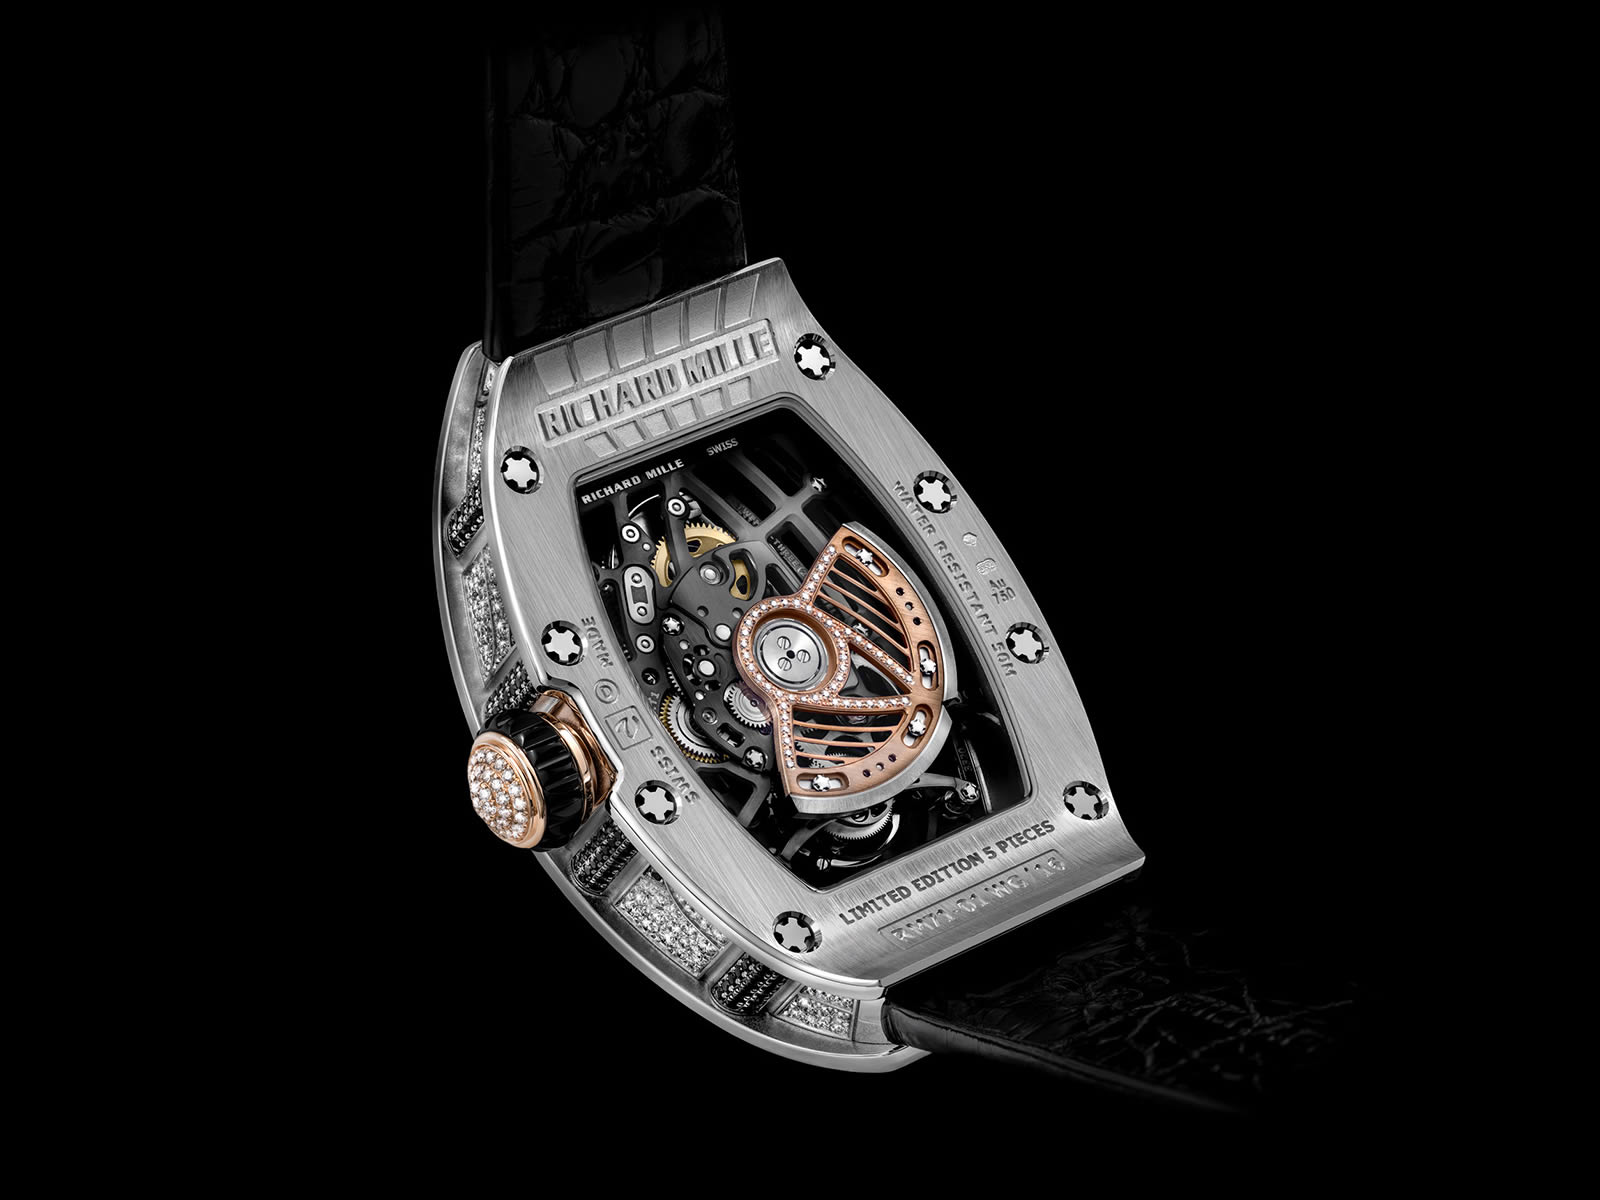 richard-mille-rm-71-01-automatic-tourbillon-talisman-20-.jpg